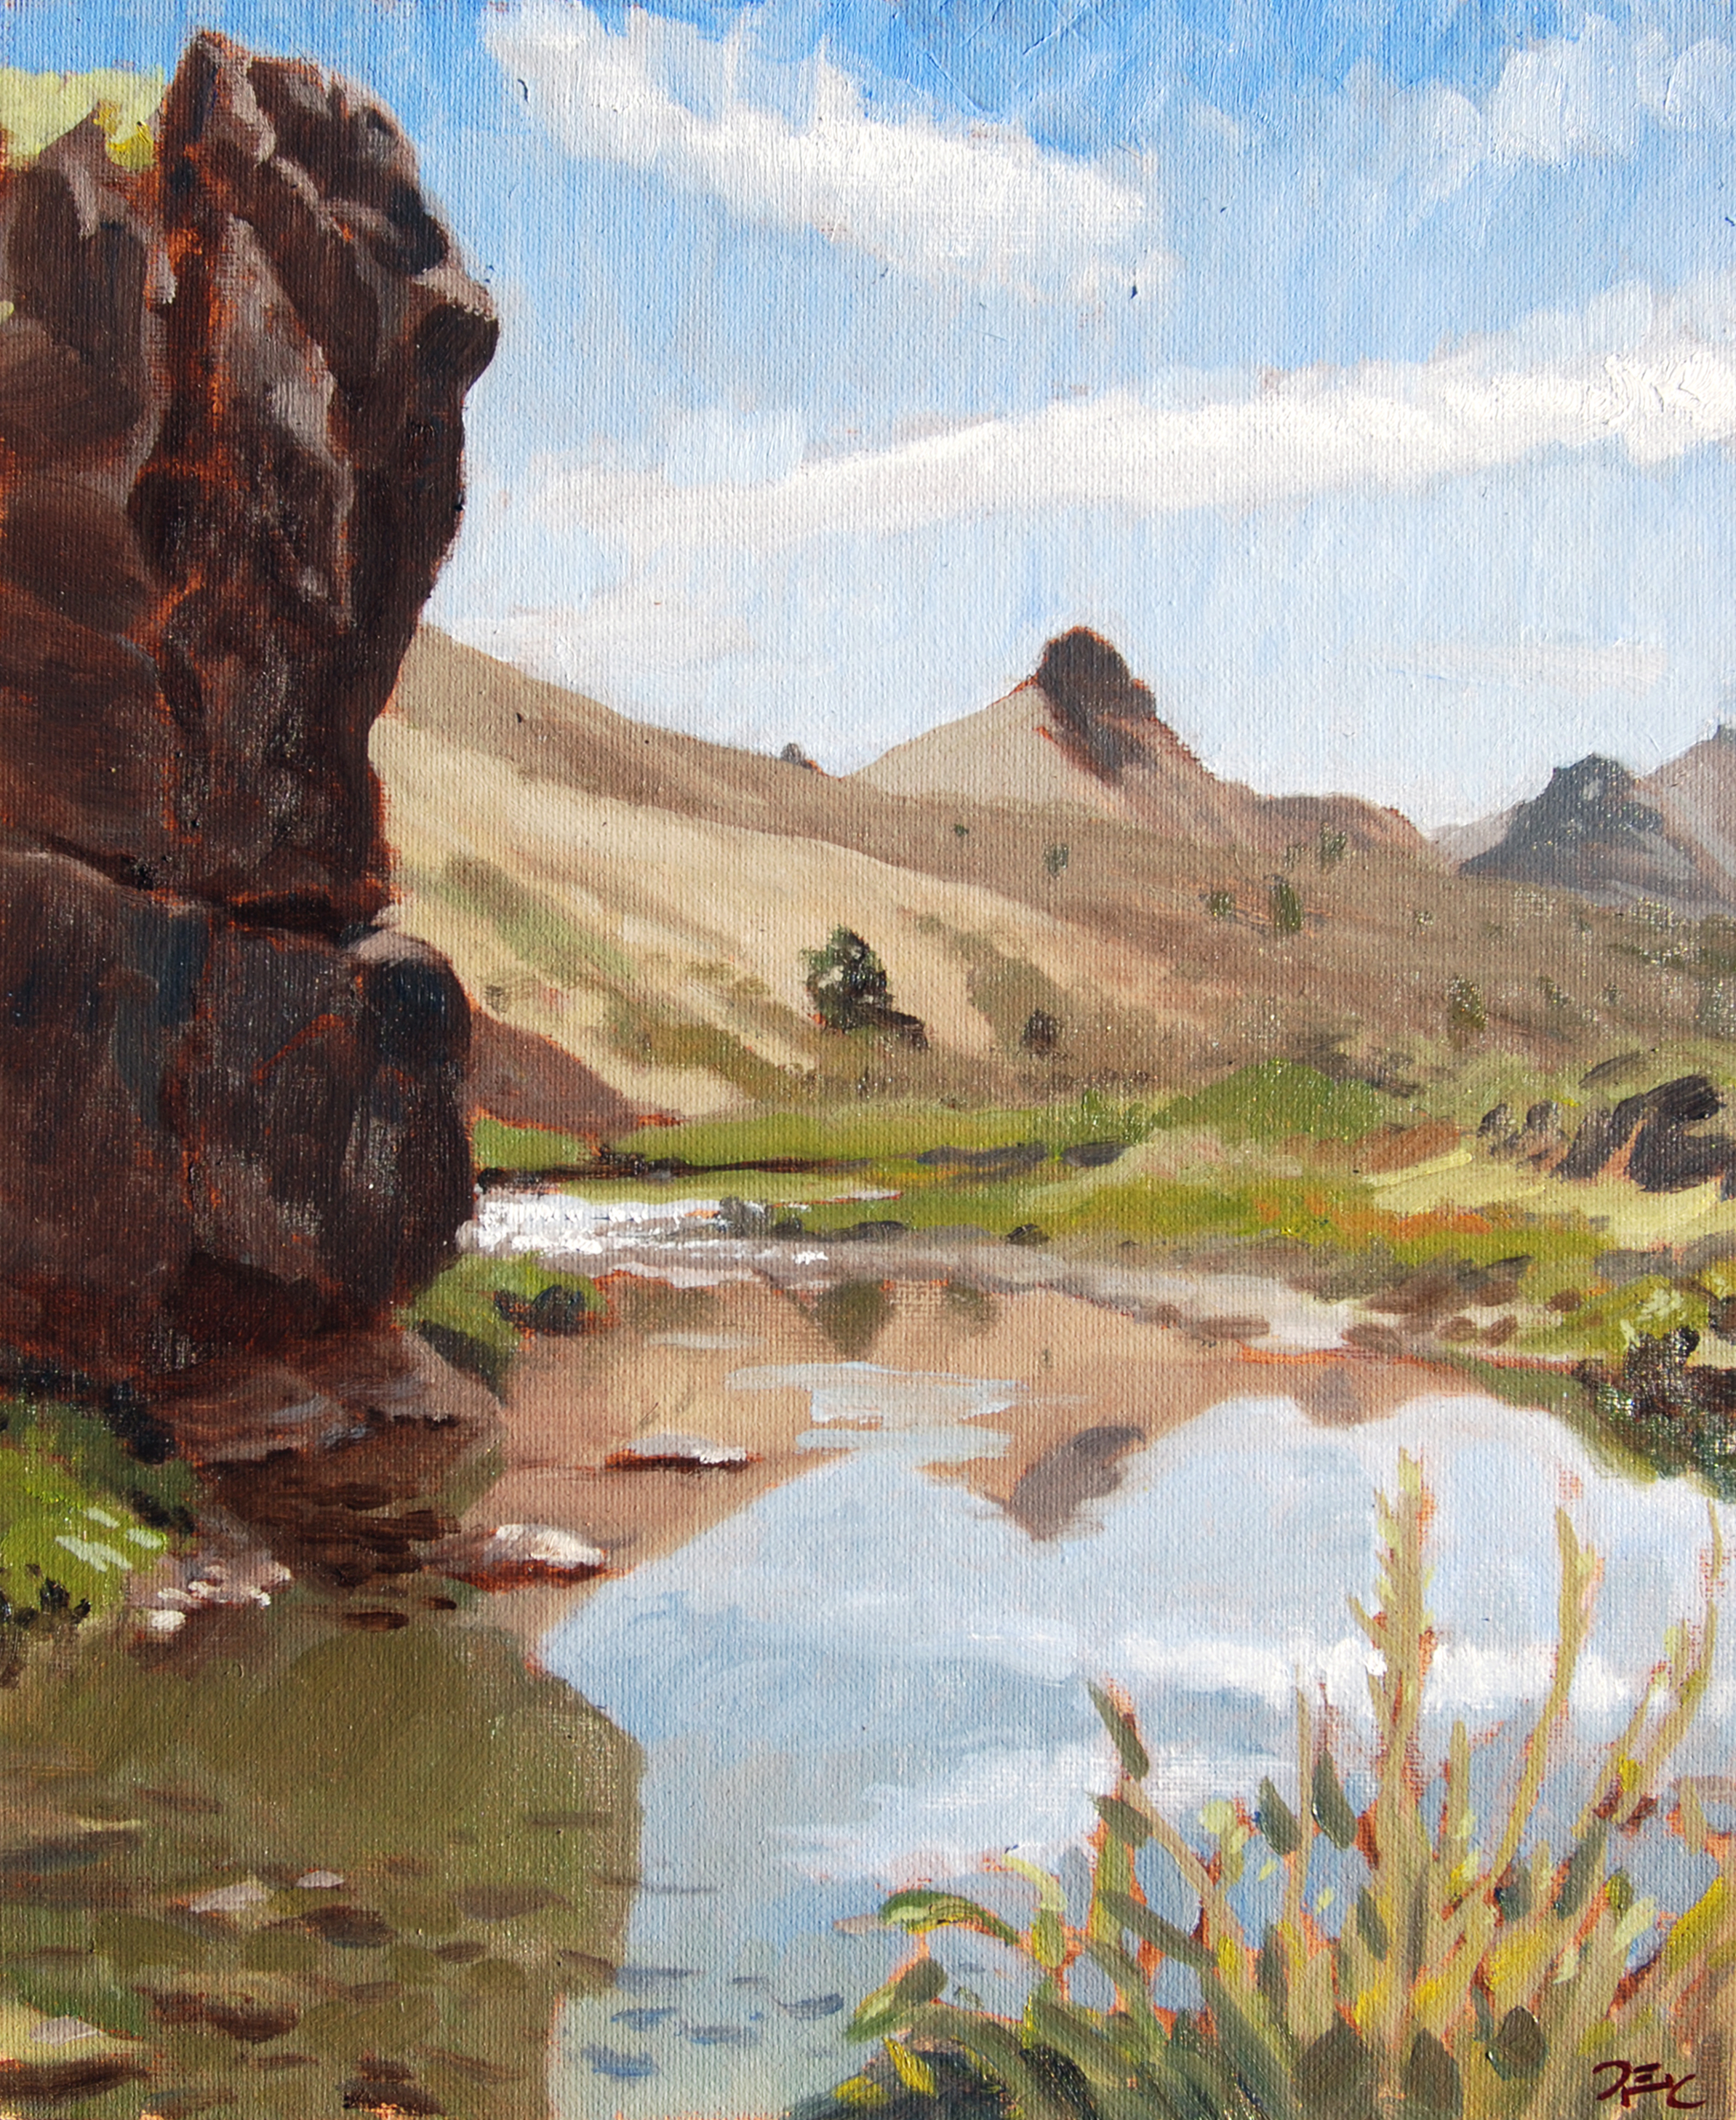 John Day River,  14 x 11 in.  Oil on panel. Available for purchase. (2016)